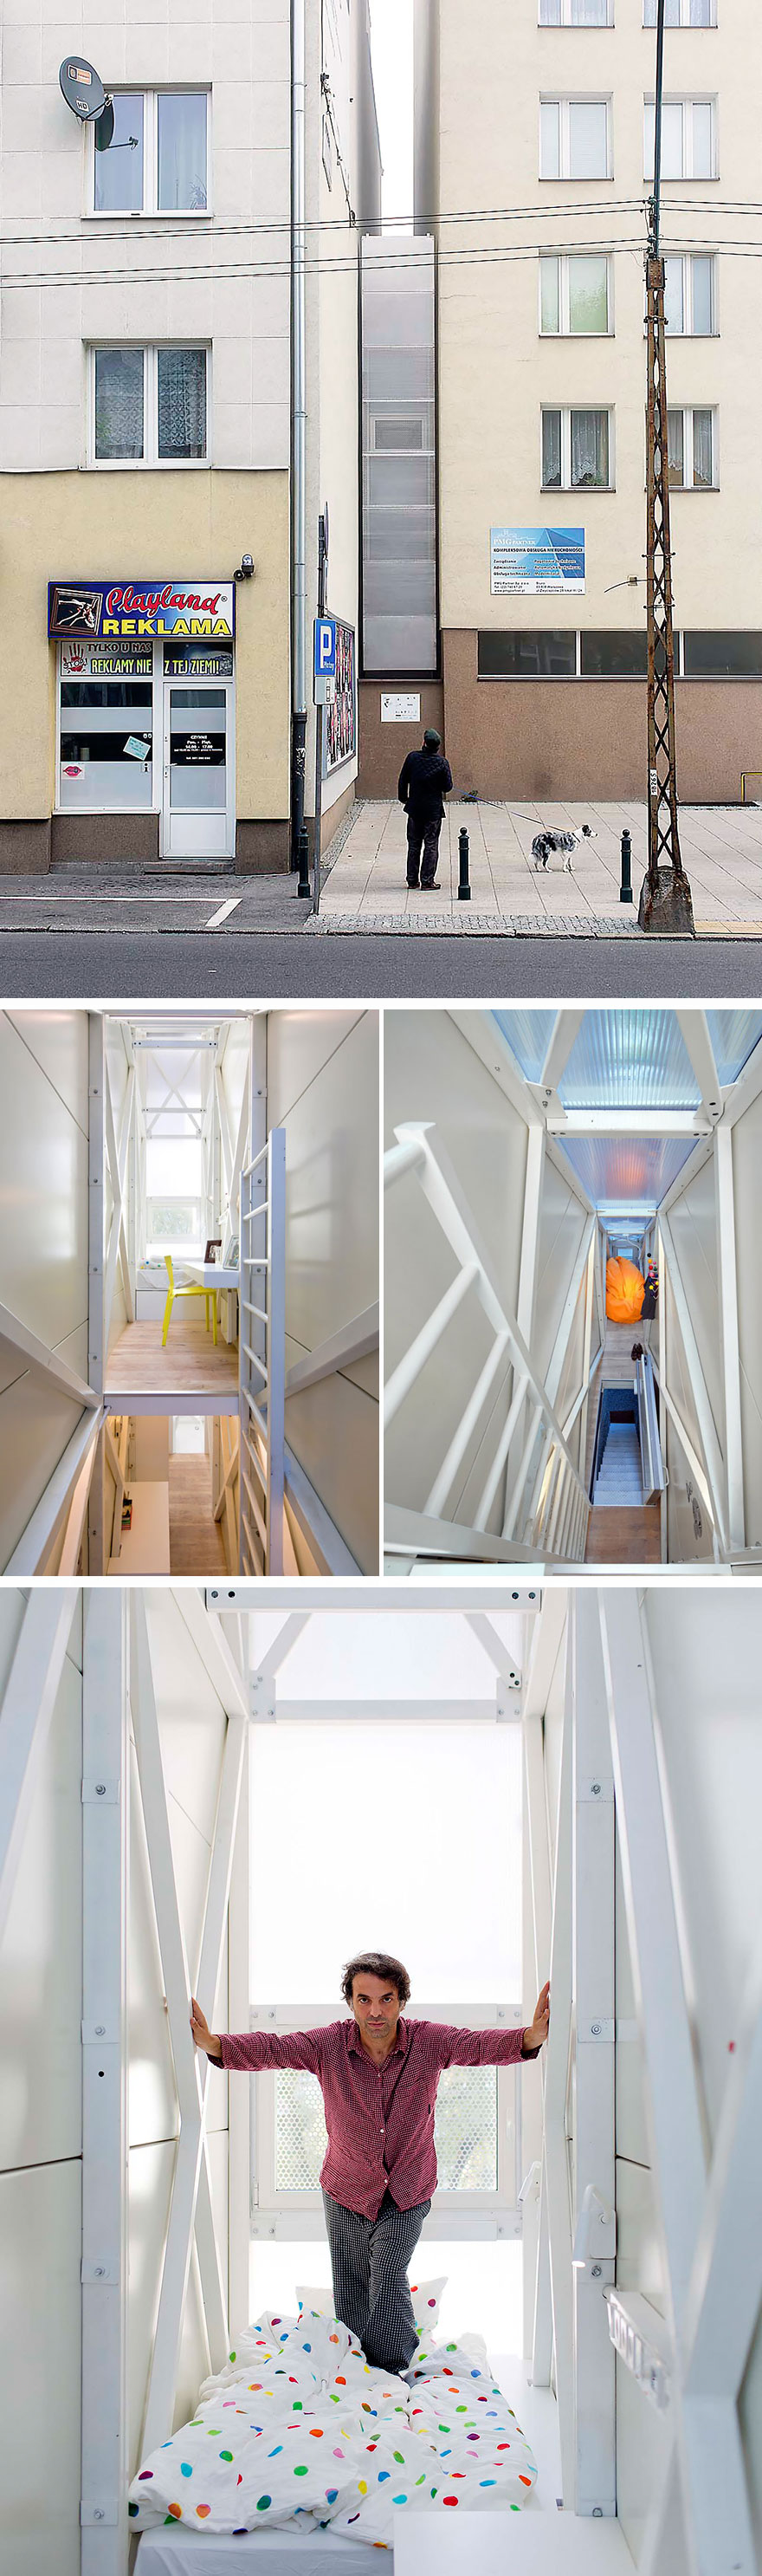 tiny-homes-perfect-for-little-space-the-keret-house-in-warsaw